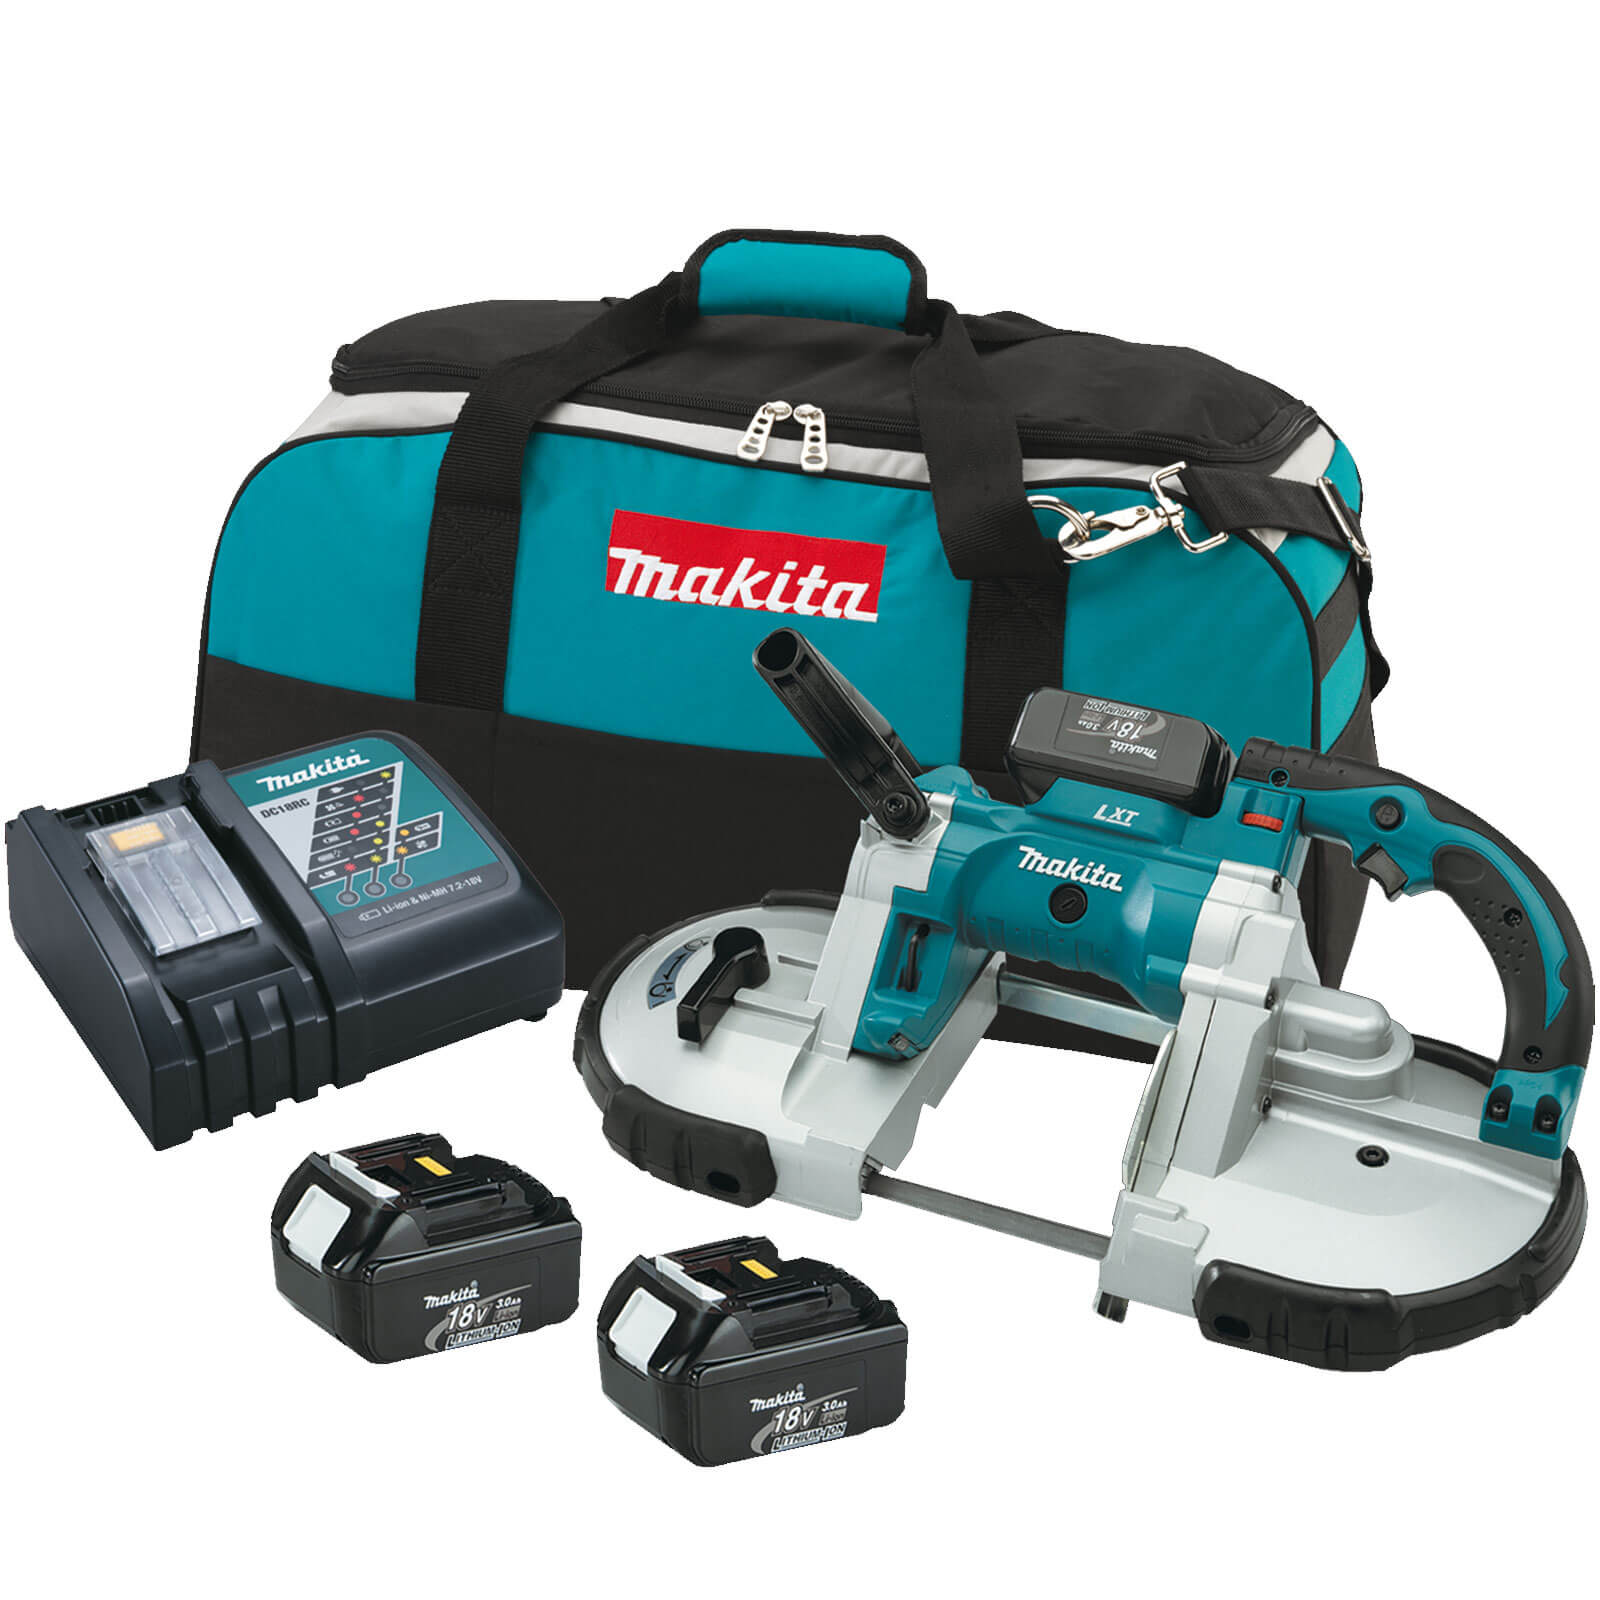 Makita DPB180 18v Cordless LXT Band Saw 2 x 4ah Li-ion Charger Case